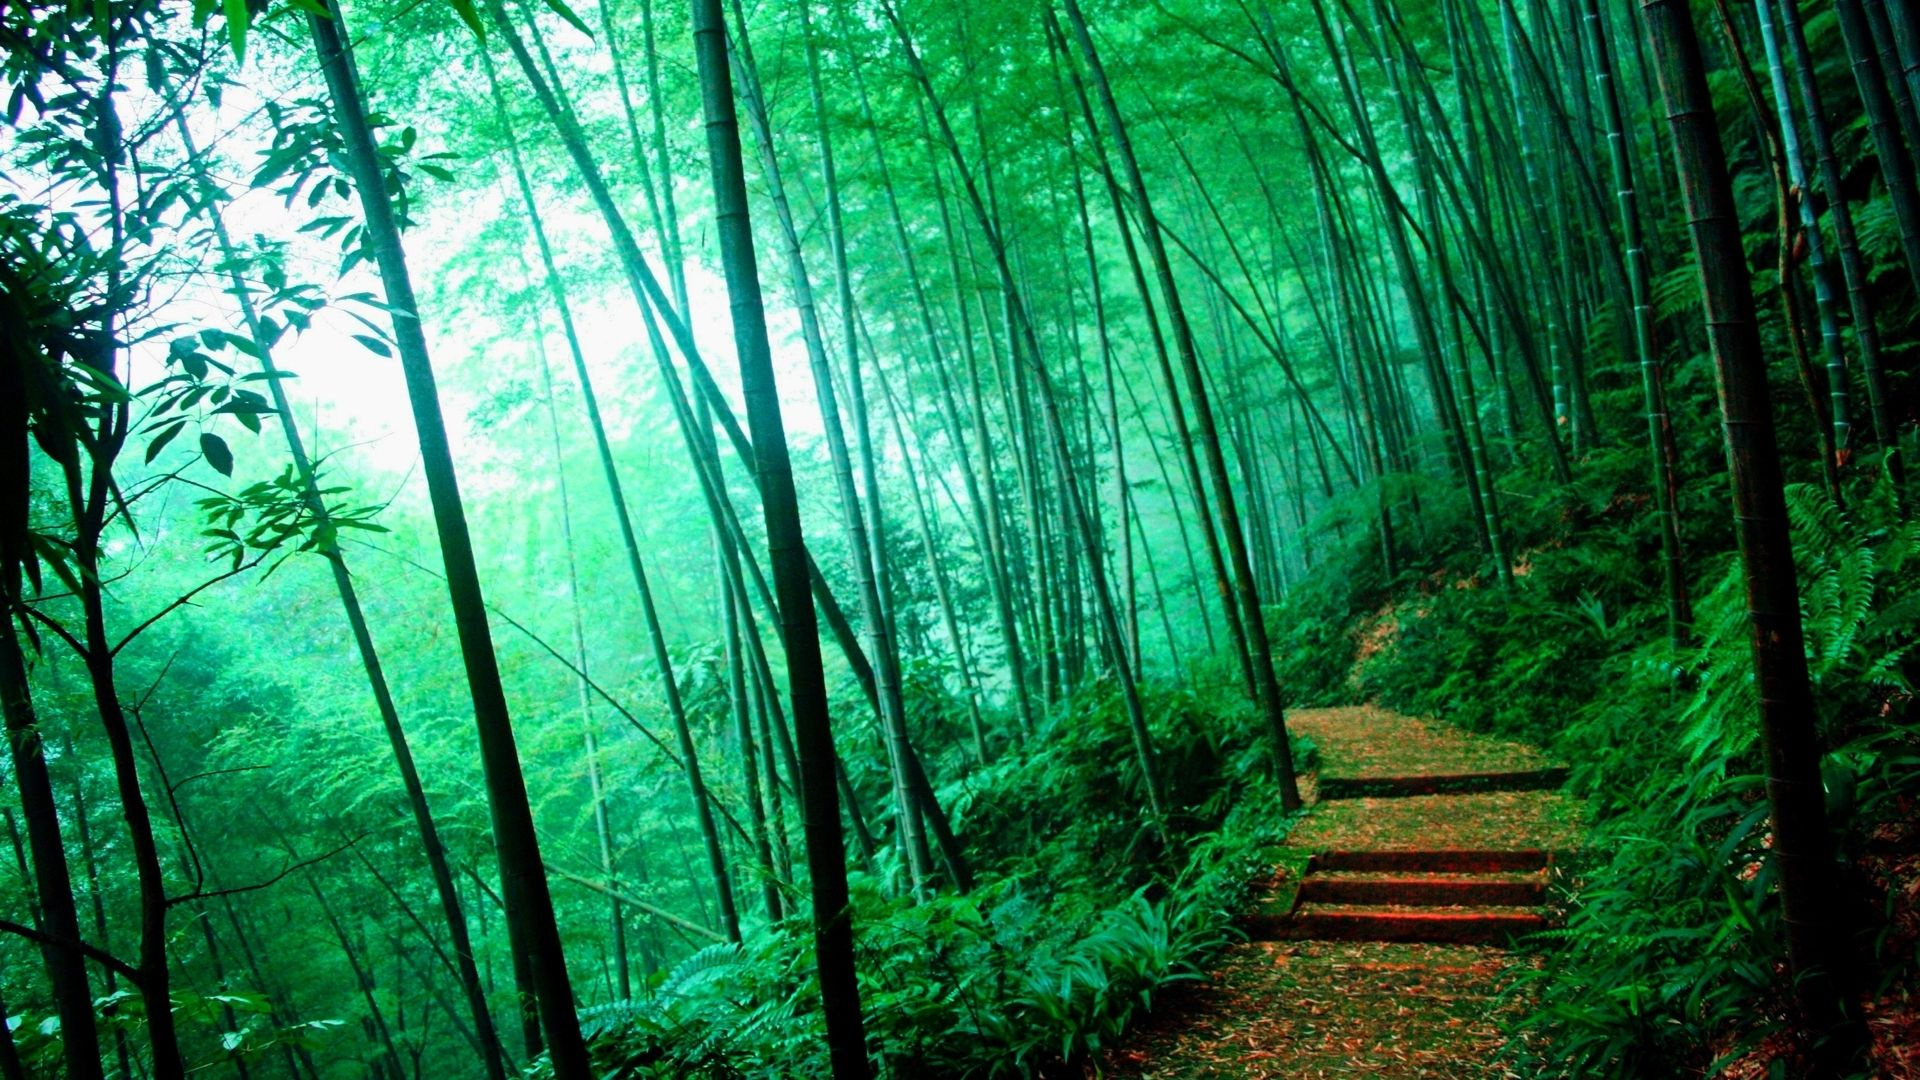 Bamboo Forest Bamboo Forest Hd Desktopmobile Wallpaper Gloria